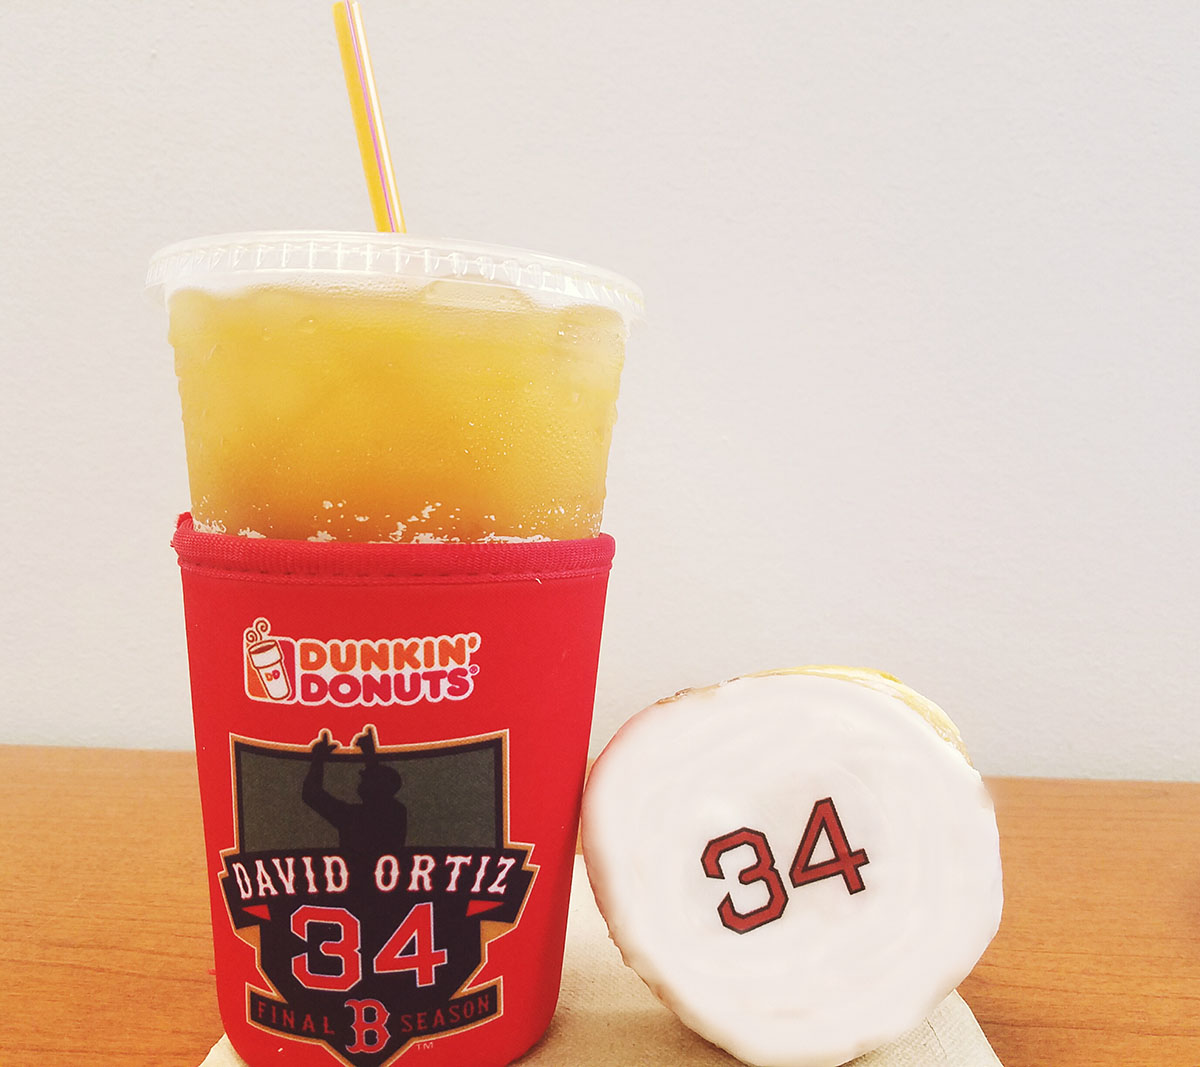 Commemorative #34 cup koozie and jelly doughnuts at Dunkin' Donuts